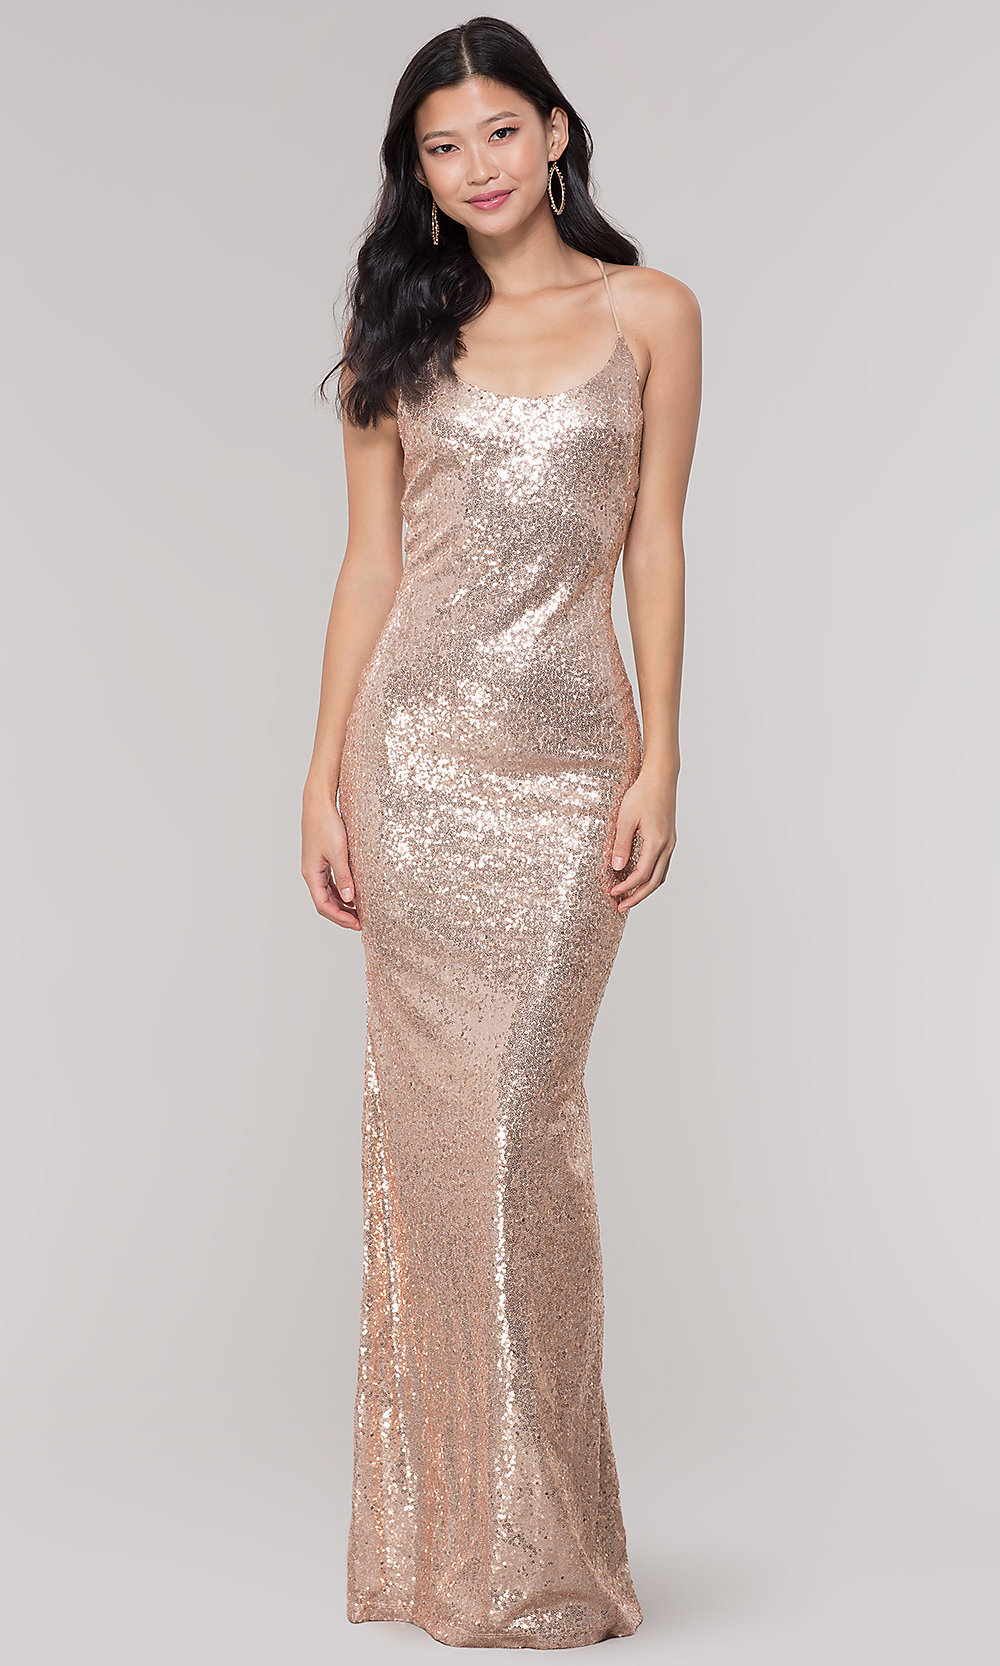 716c9a90f37 Silver Sequin Long Prom Dress - Data Dynamic AG